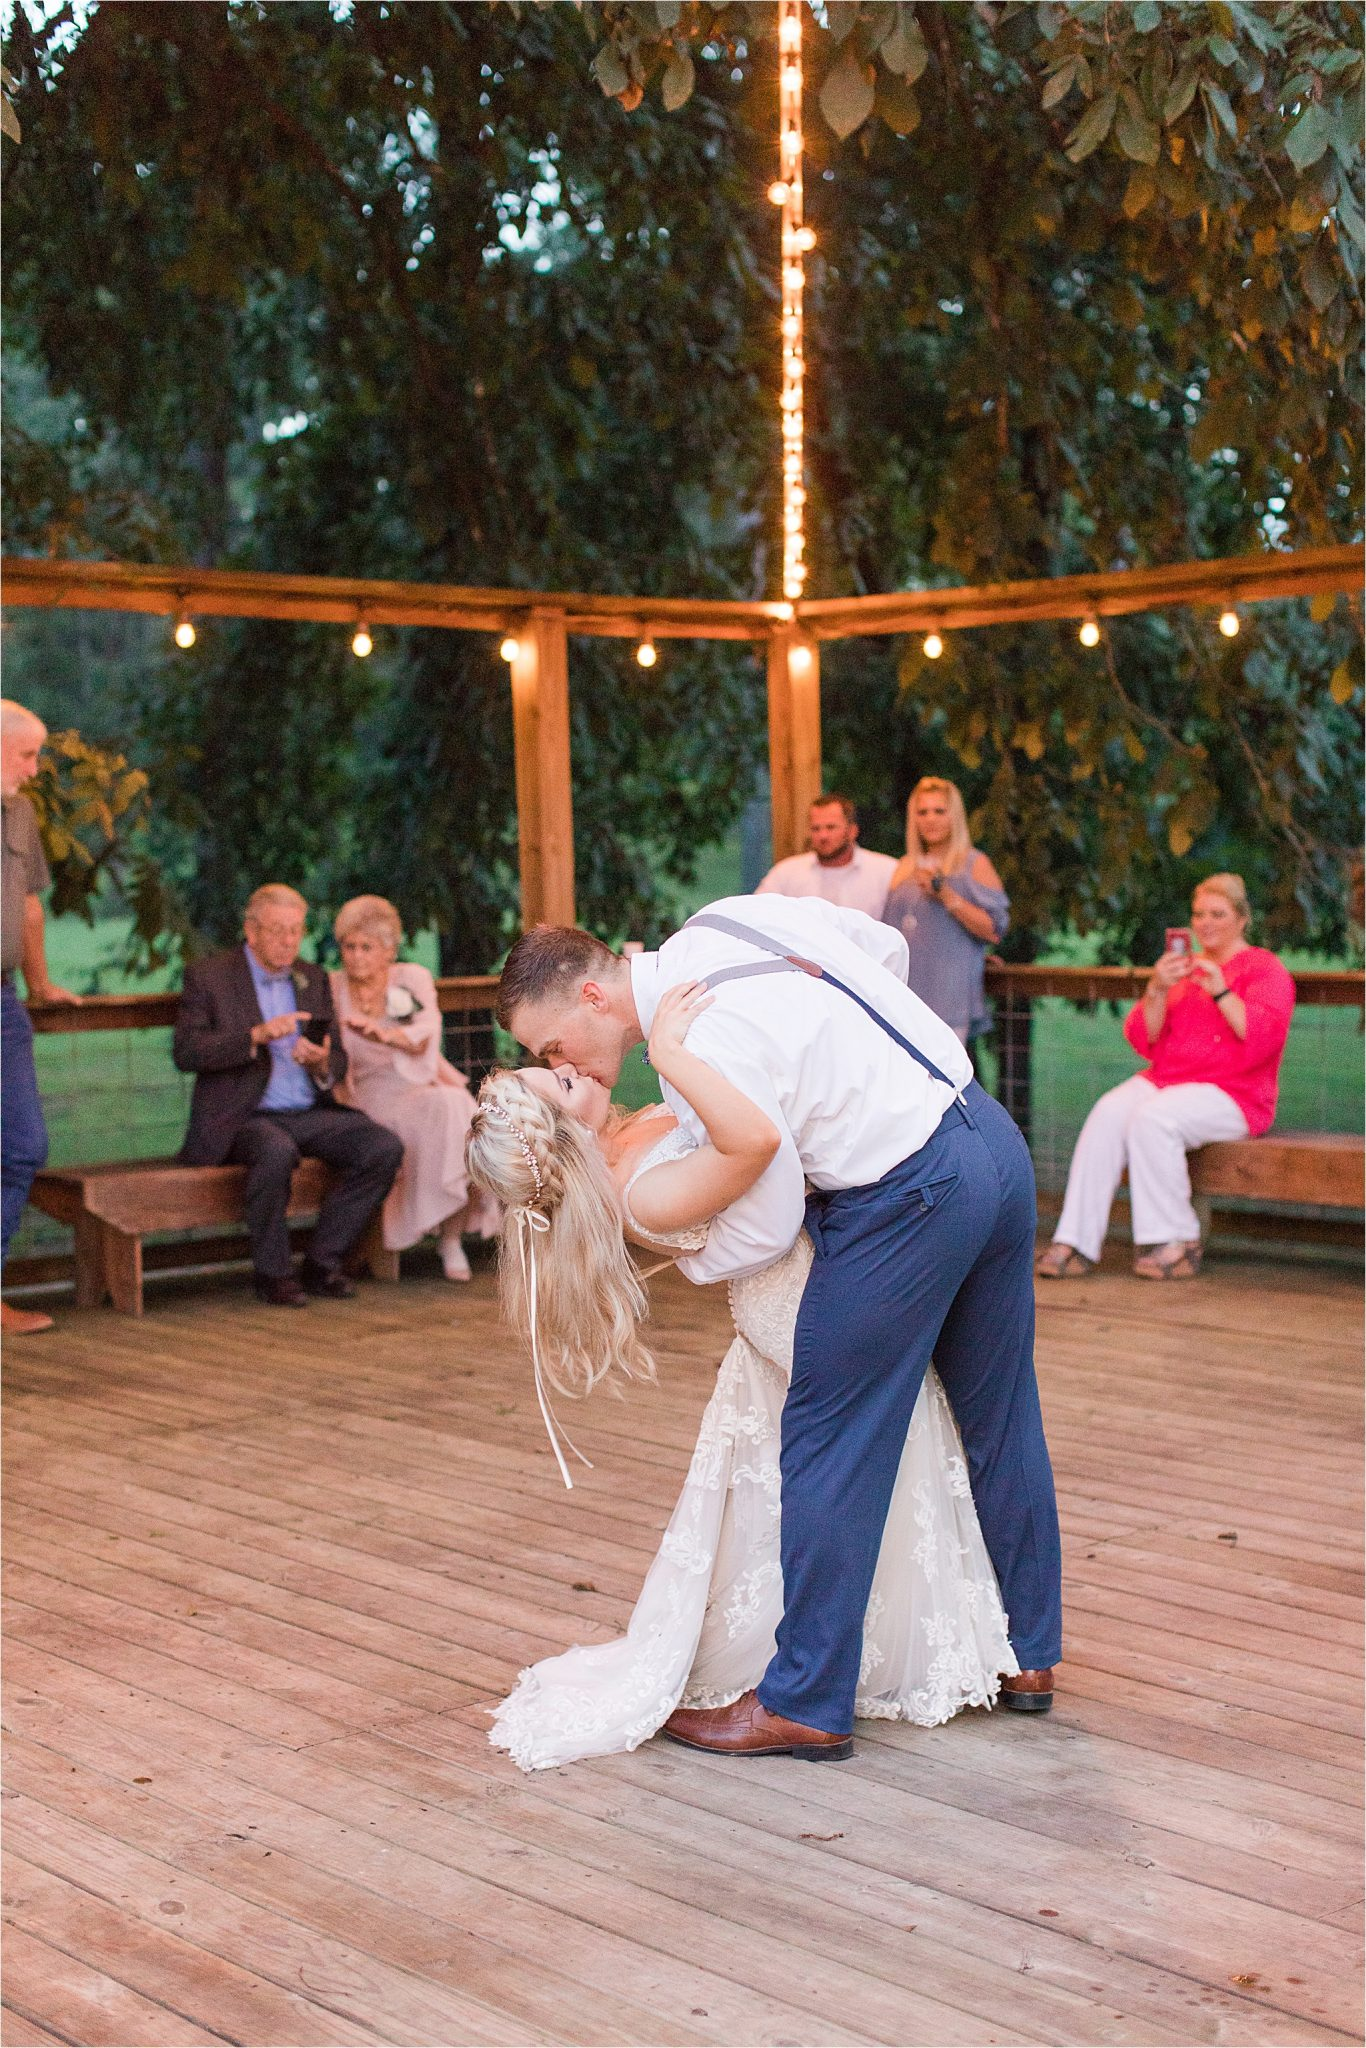 bride-groom-first-dance-dipping-kiss-wedding-reception-dance-floor